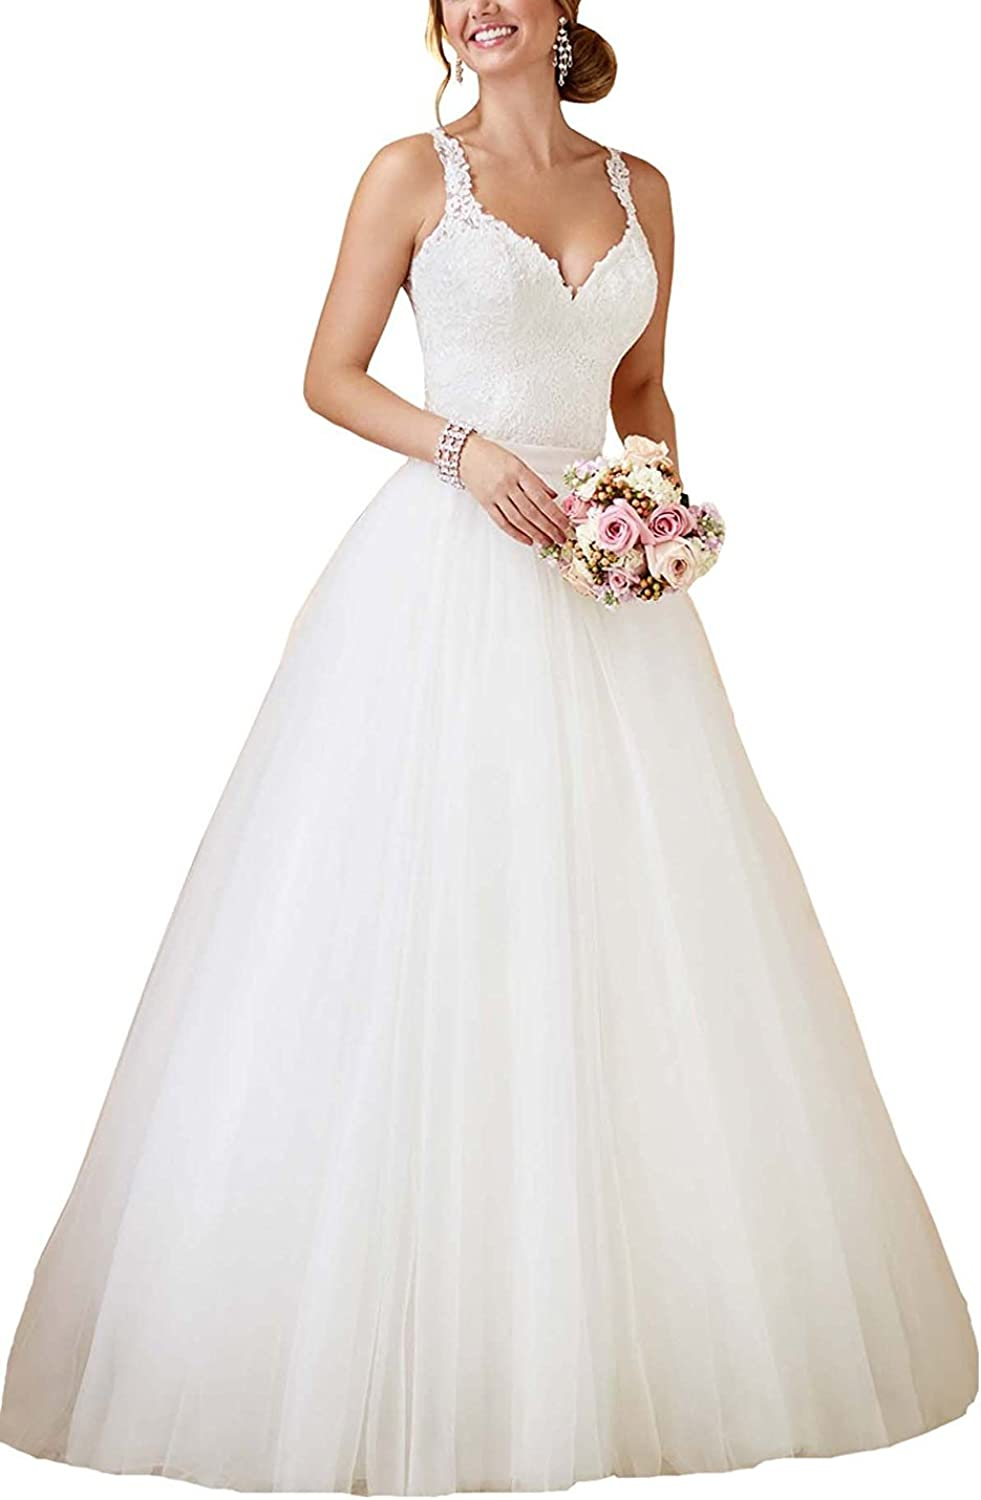 Alexzendra Women's Two Pieces Wedding Dress For Bride 2018 Straps Bride Gowns With Detachable Train